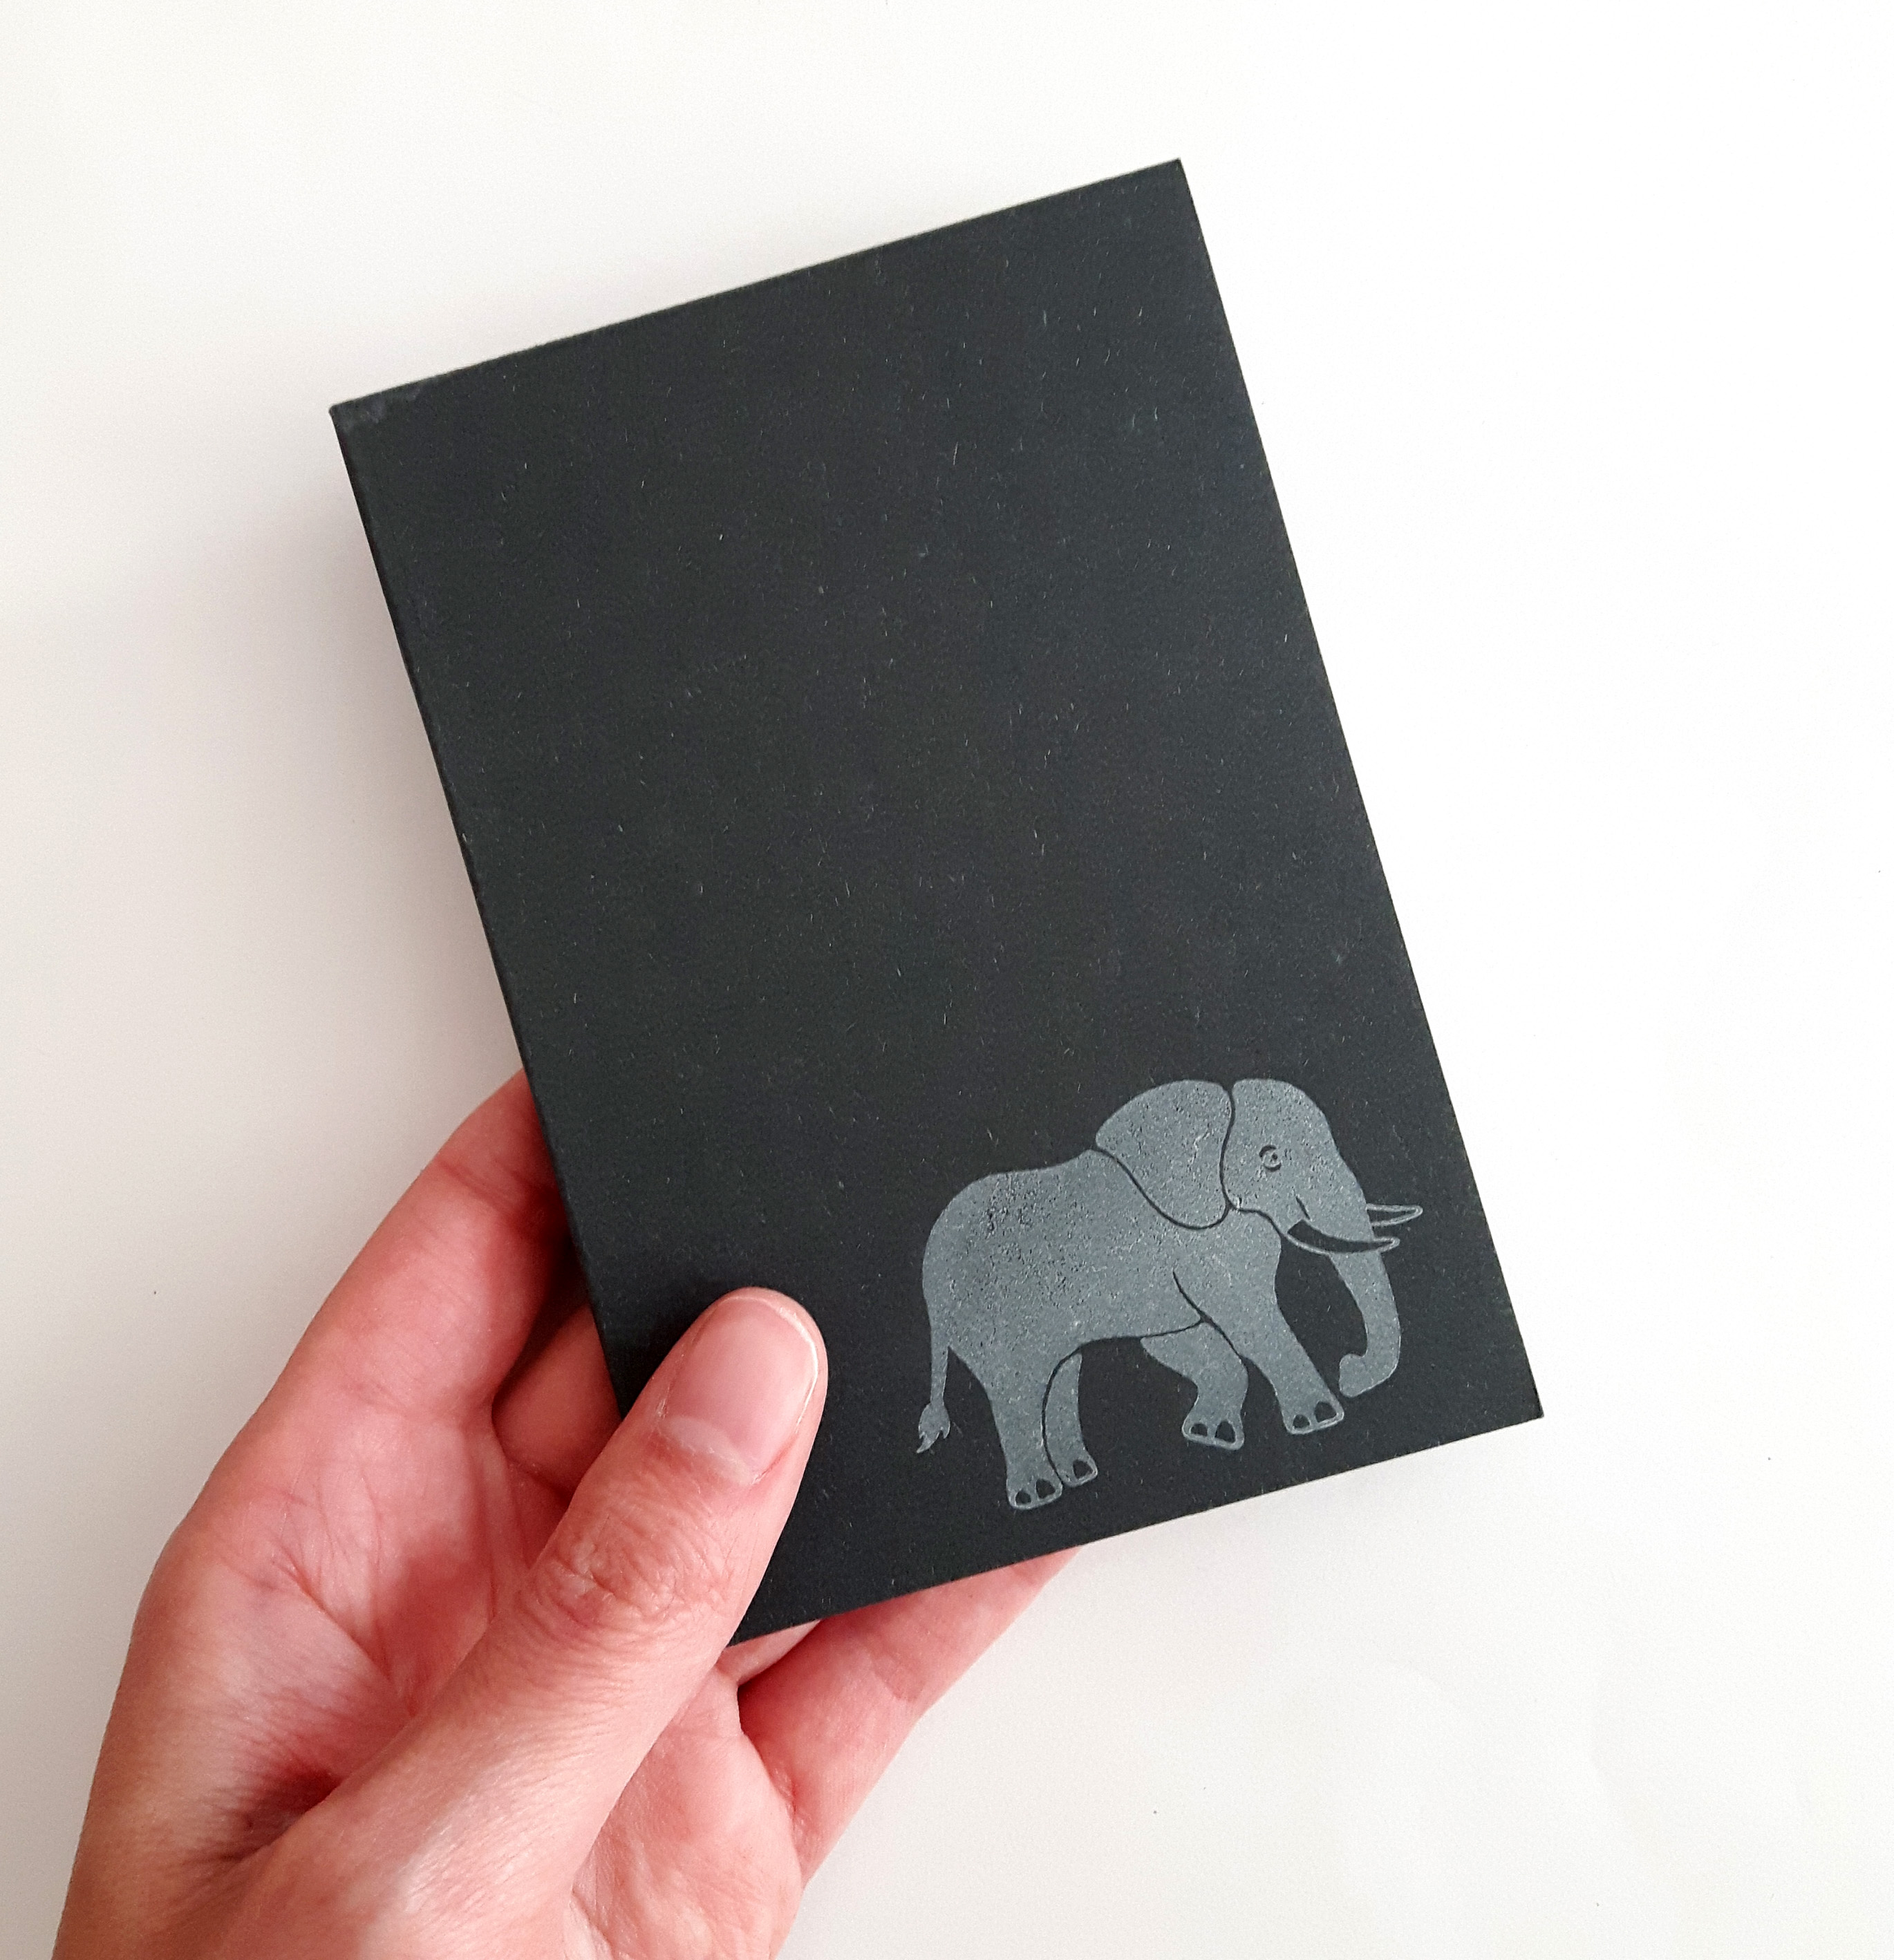 elephant notebook, held in a hand to show size. Charcoal grey notebook, with white elephant in bottom right corner